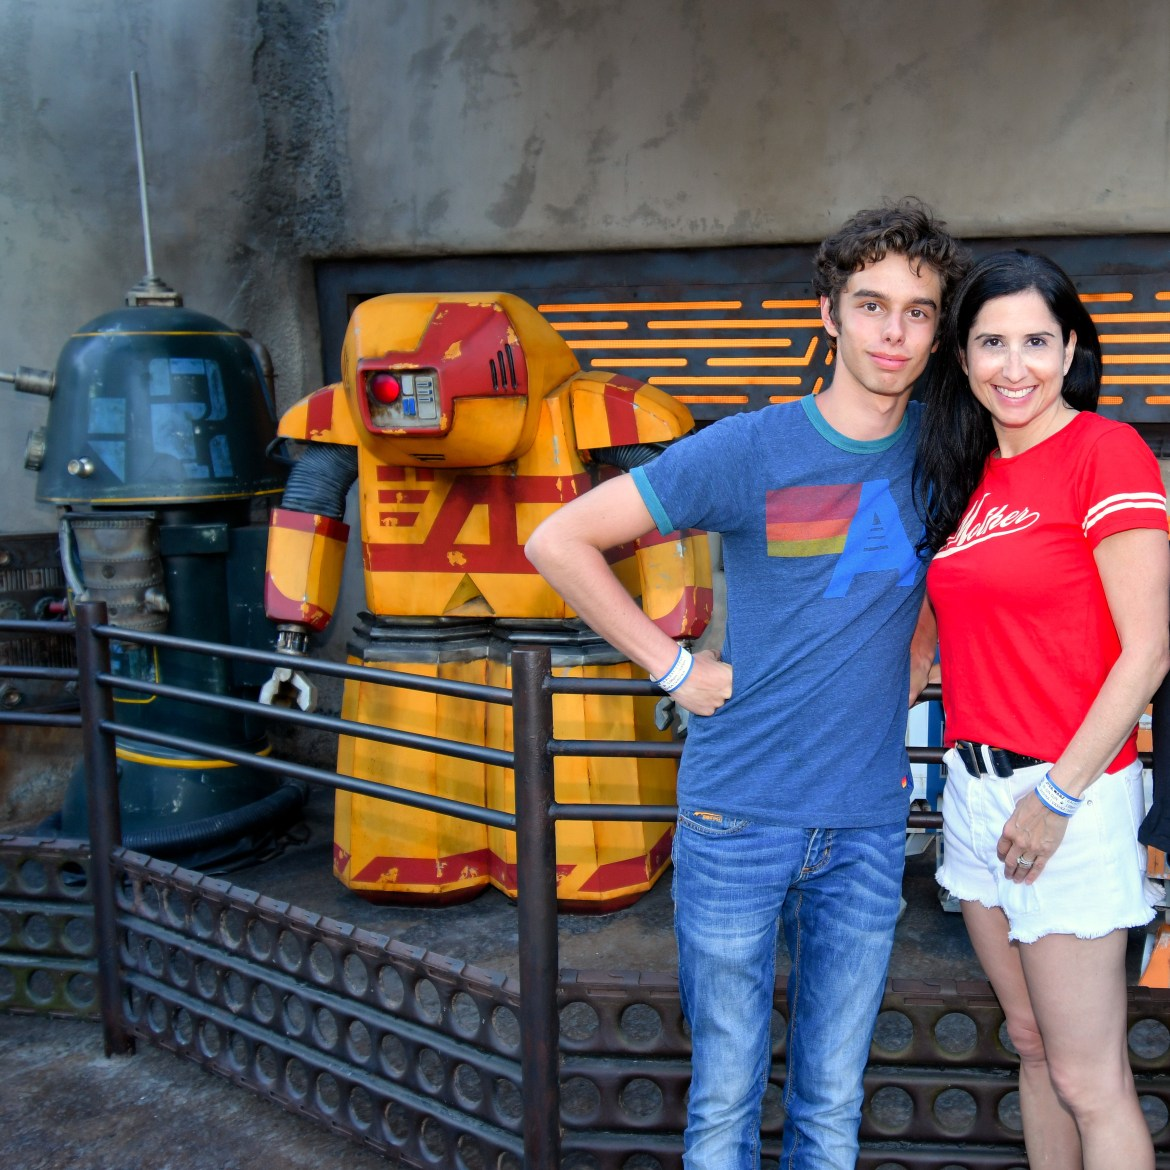 Droid Depot Galaxy's Edge Disneyland Los Angeles #galaxysedge #hilarystyleme